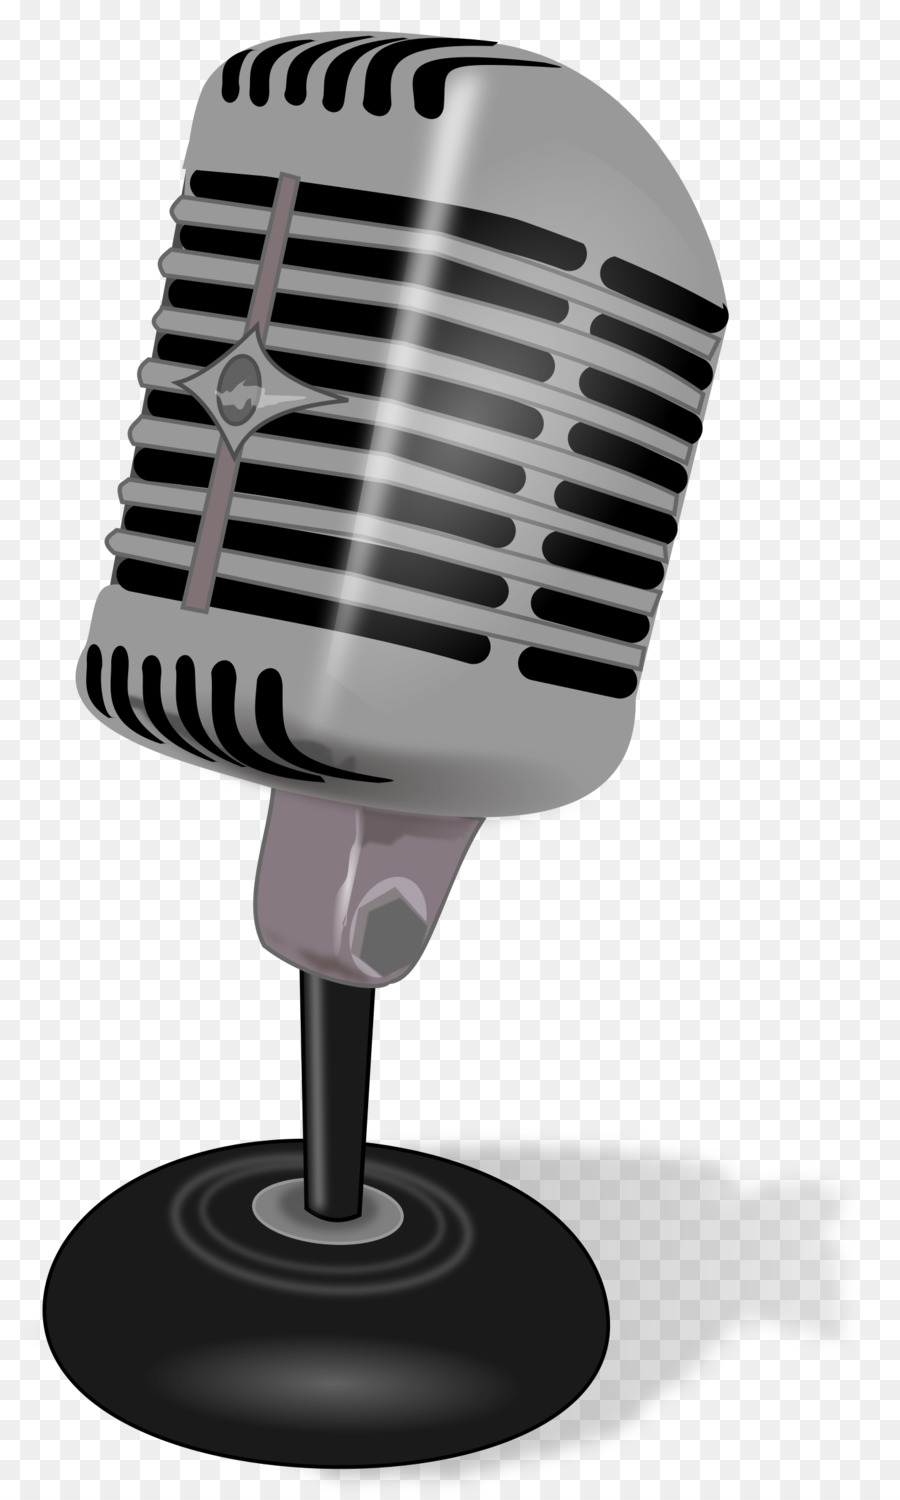 Microphone clipart free graphic download Microphone Cartoontransparent png image & clipart free download graphic download